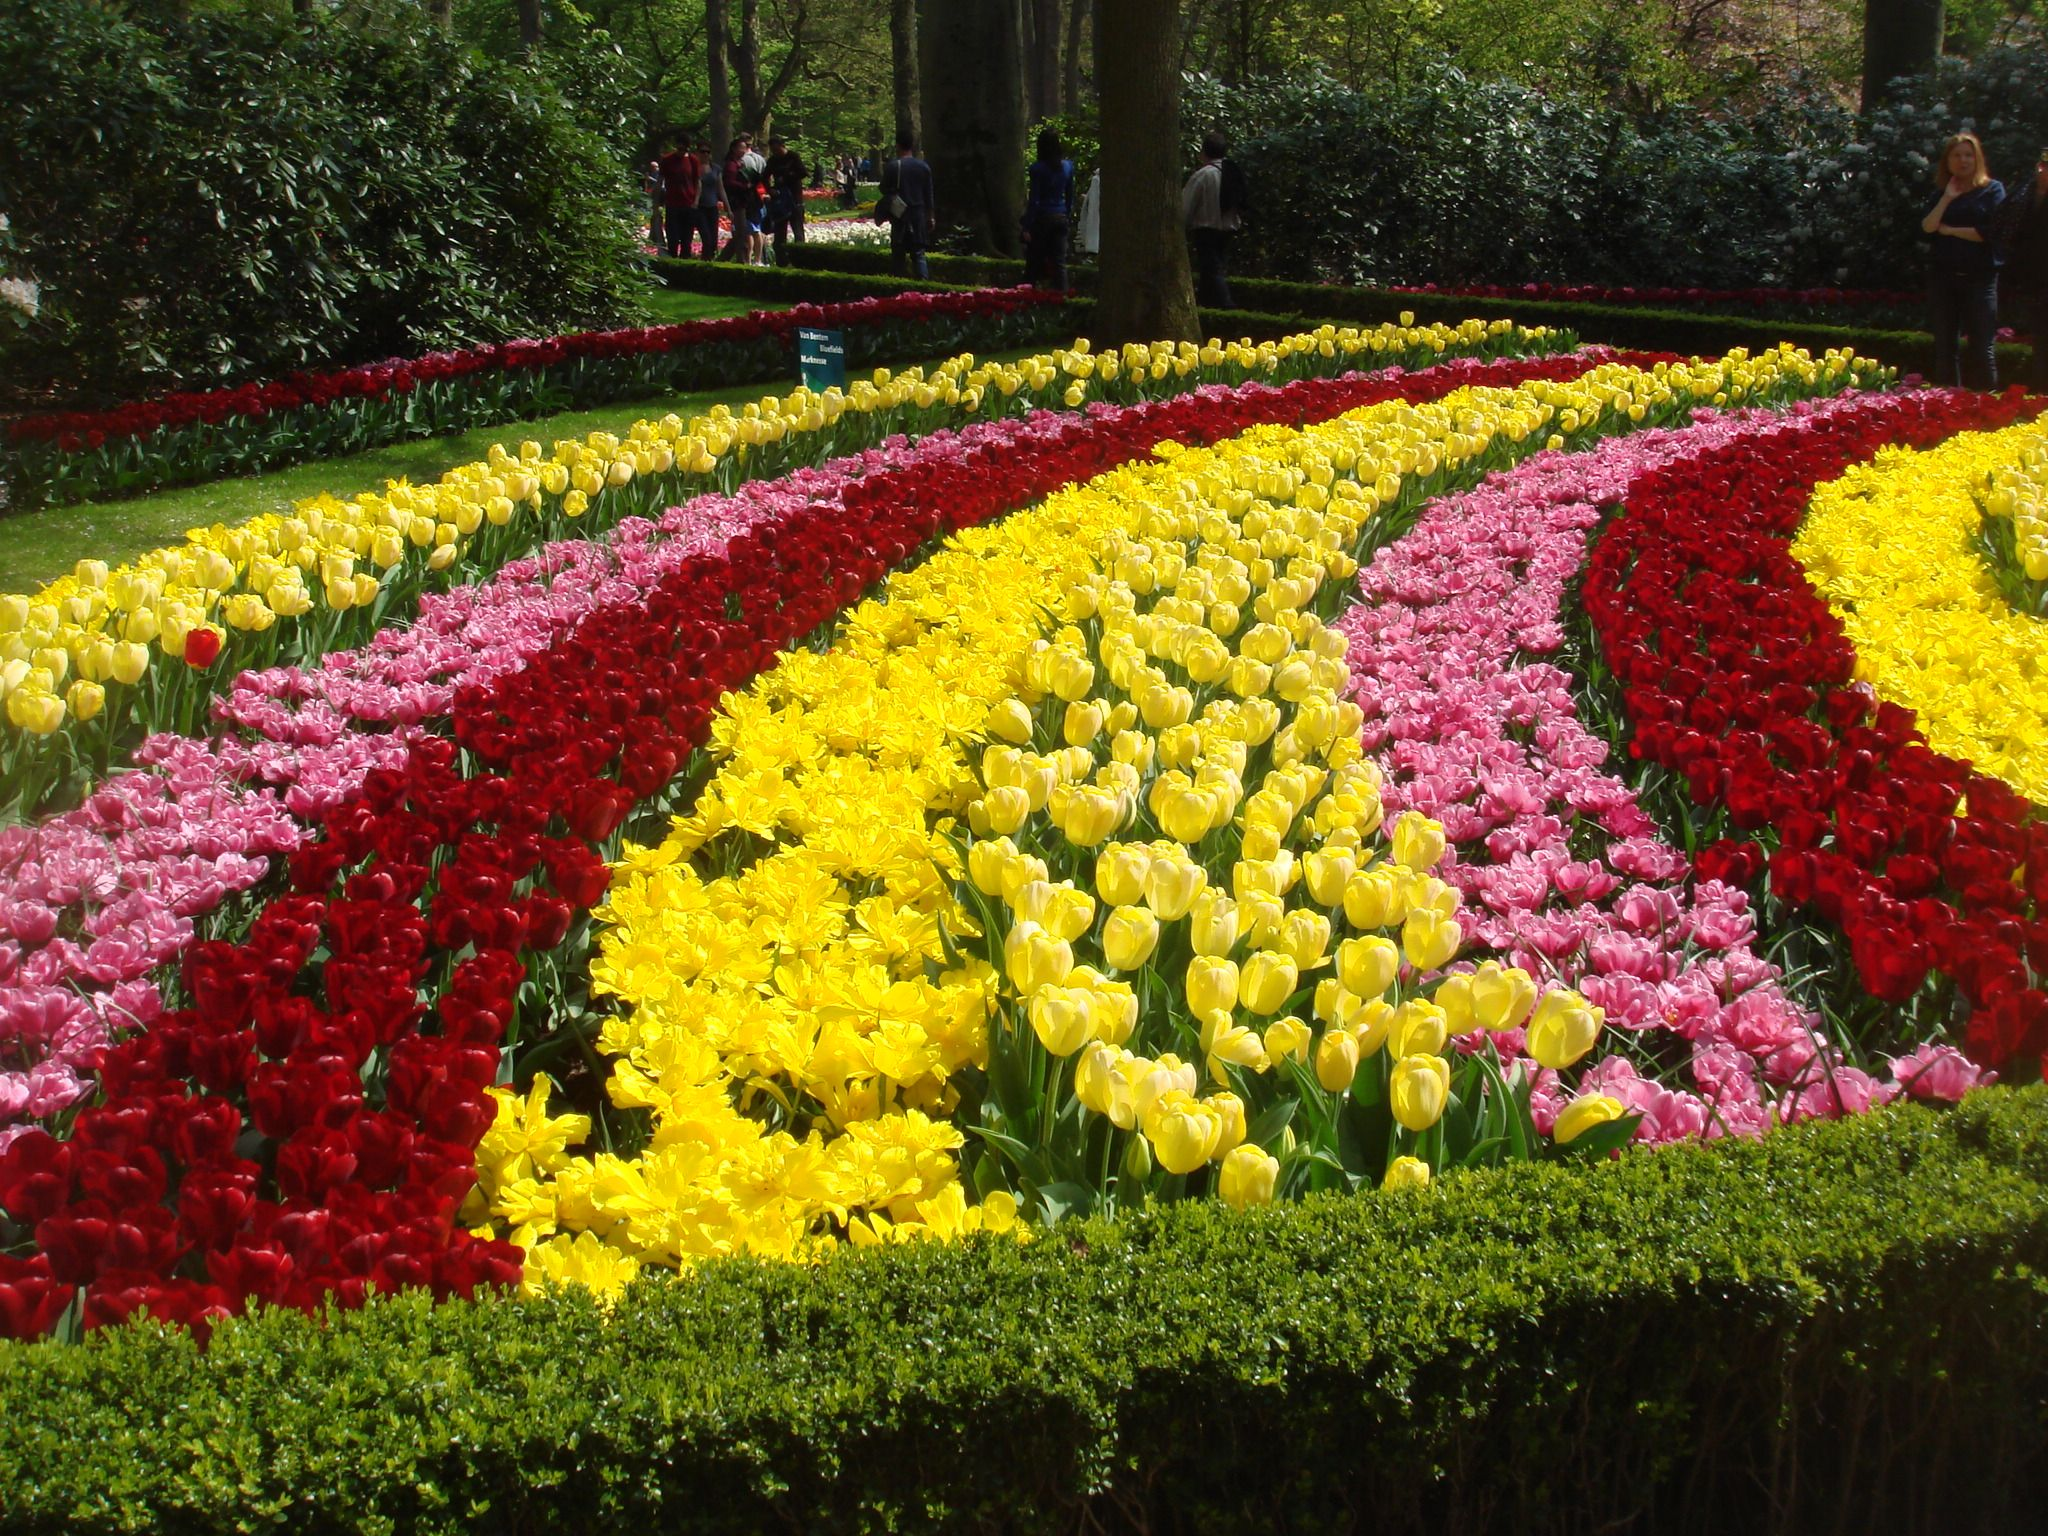 A Festival of Tulips